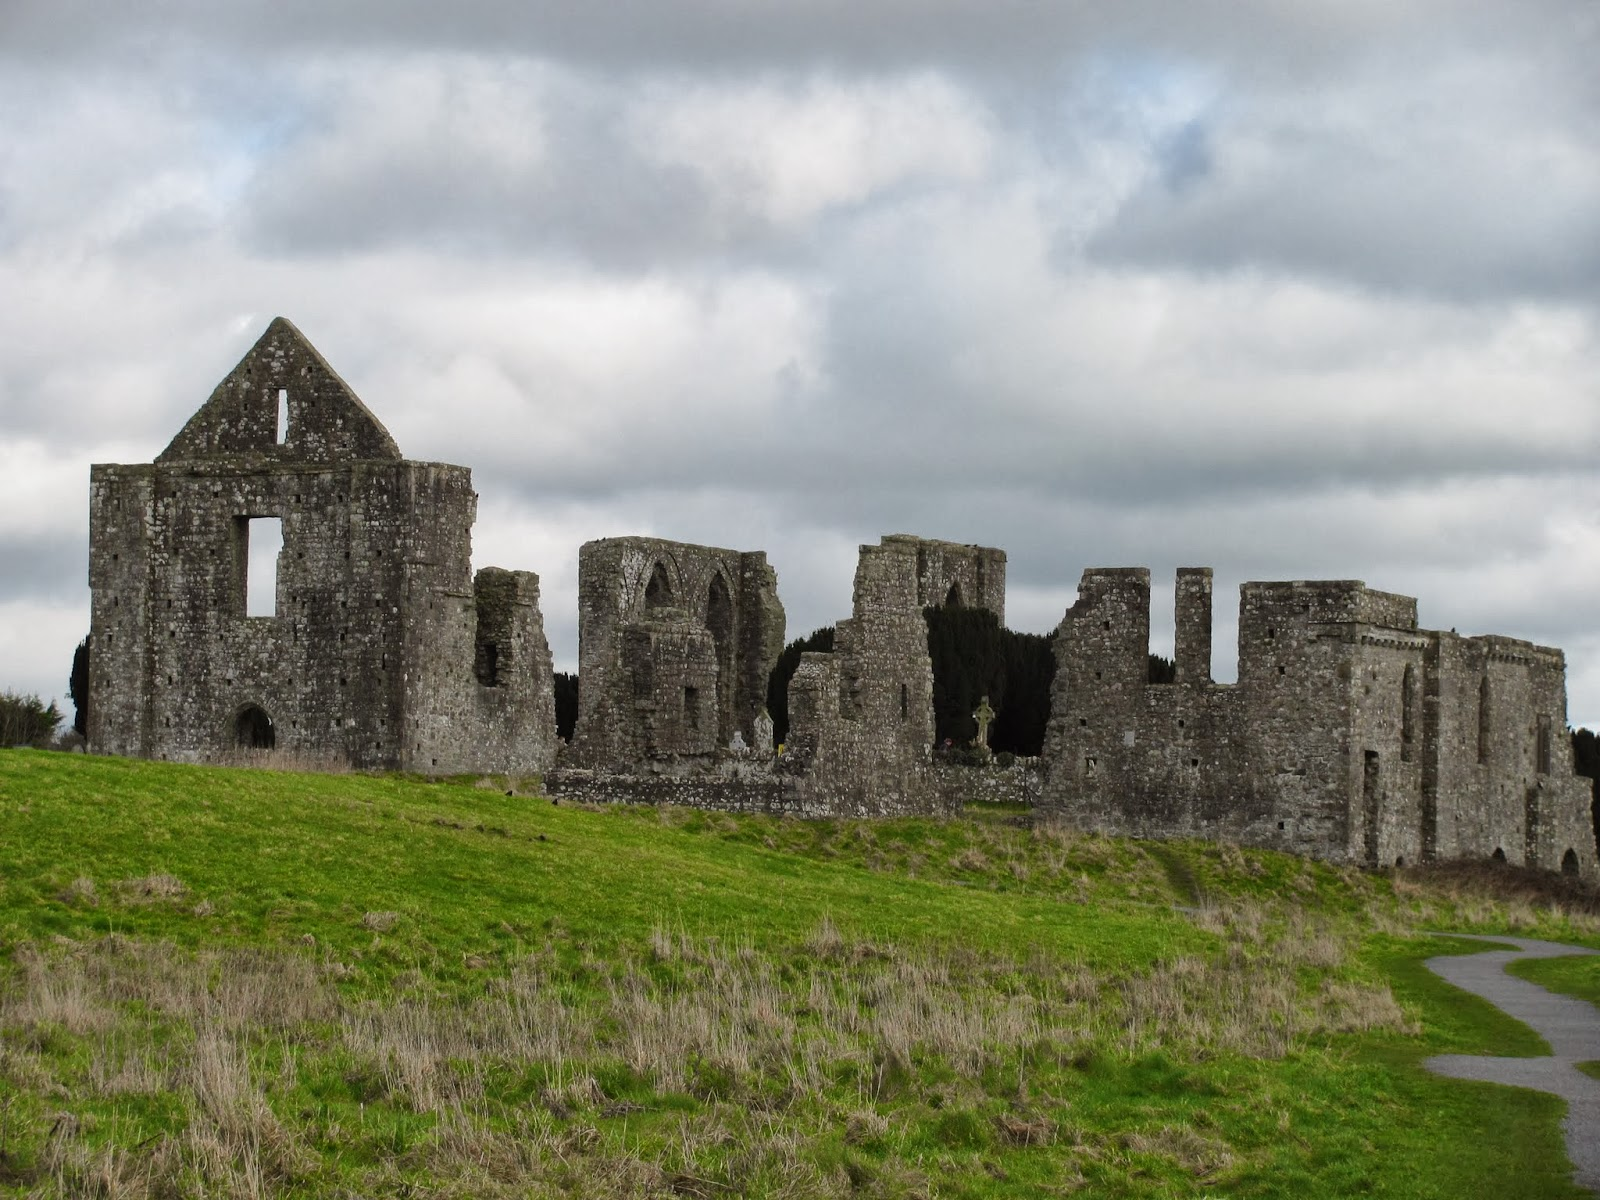 Sts. Peter and Paul Cathedral Ruins in Trim, Ireland